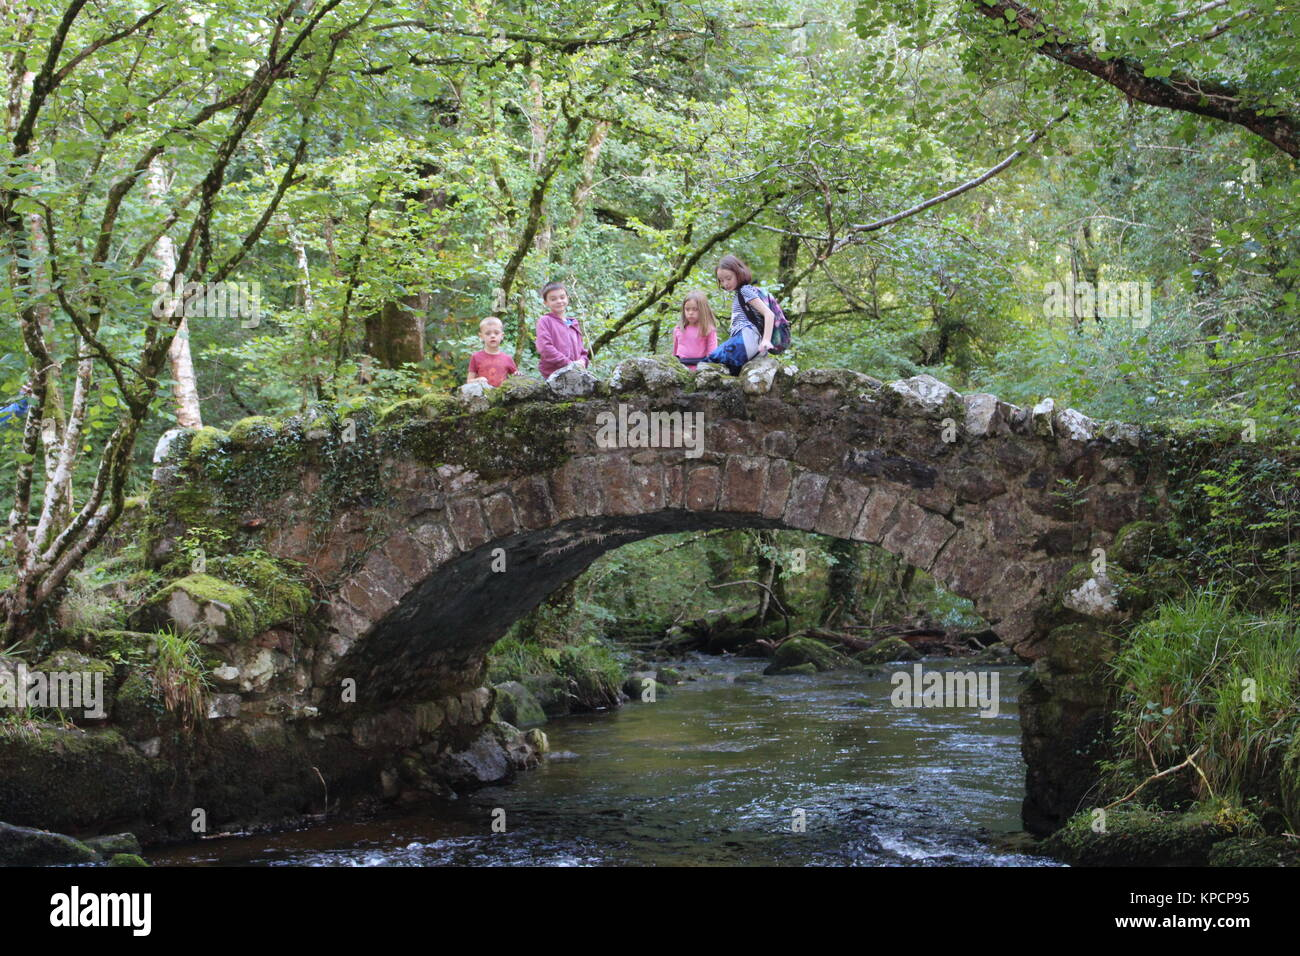 children on old bridge in forest - Stock Image